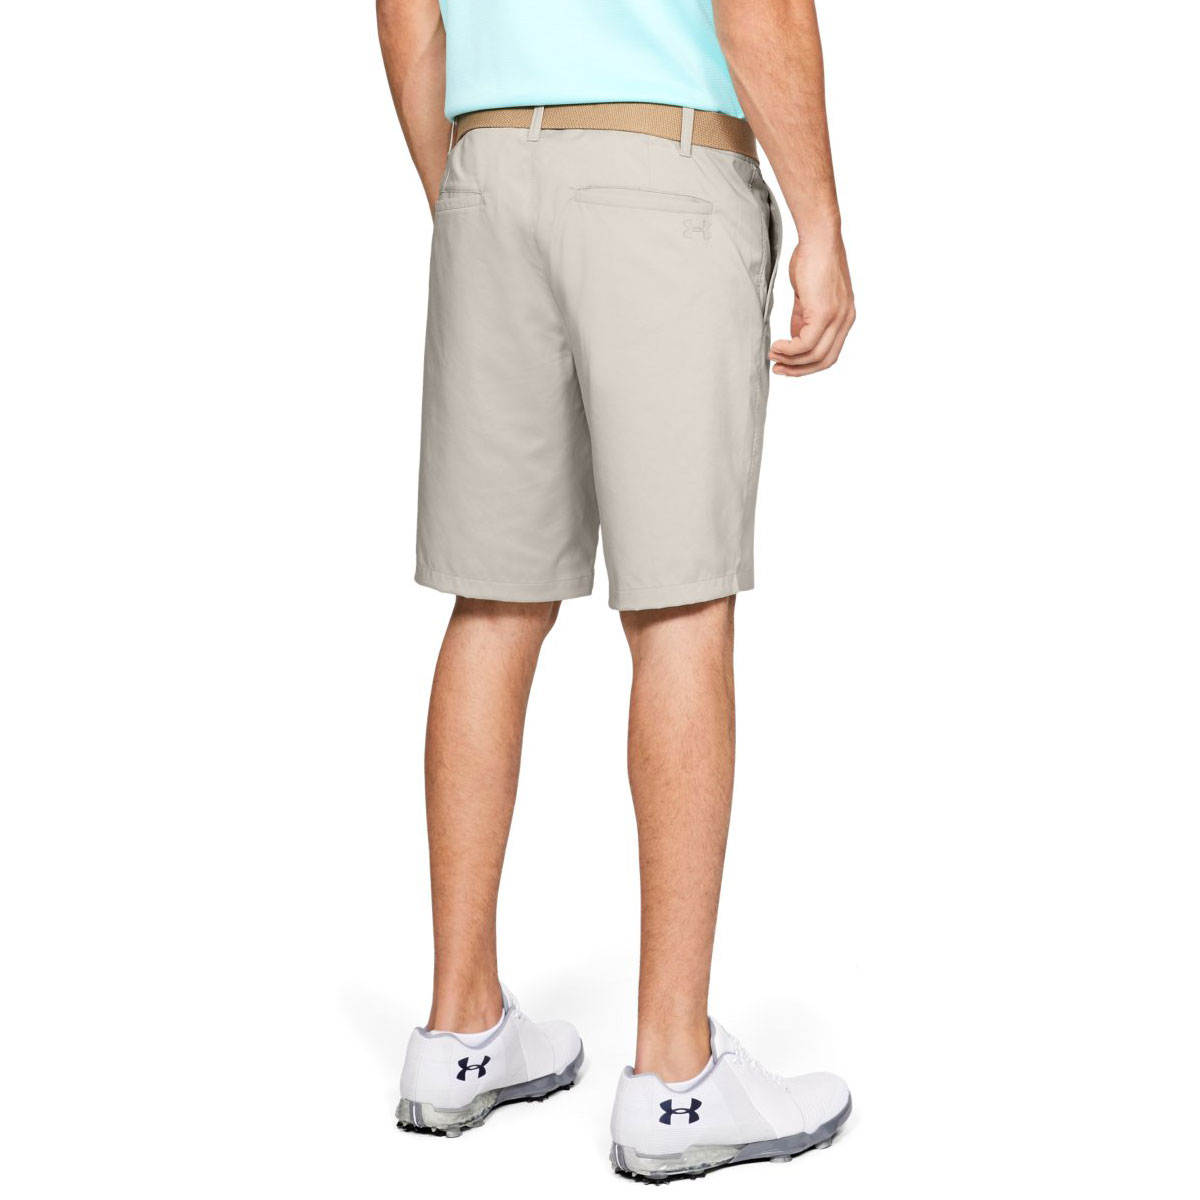 Under-Armour-Mens-2019-EU-Tech-Stretch-Soft-Tapered-Fitted-Golf-Shorts Indexbild 7